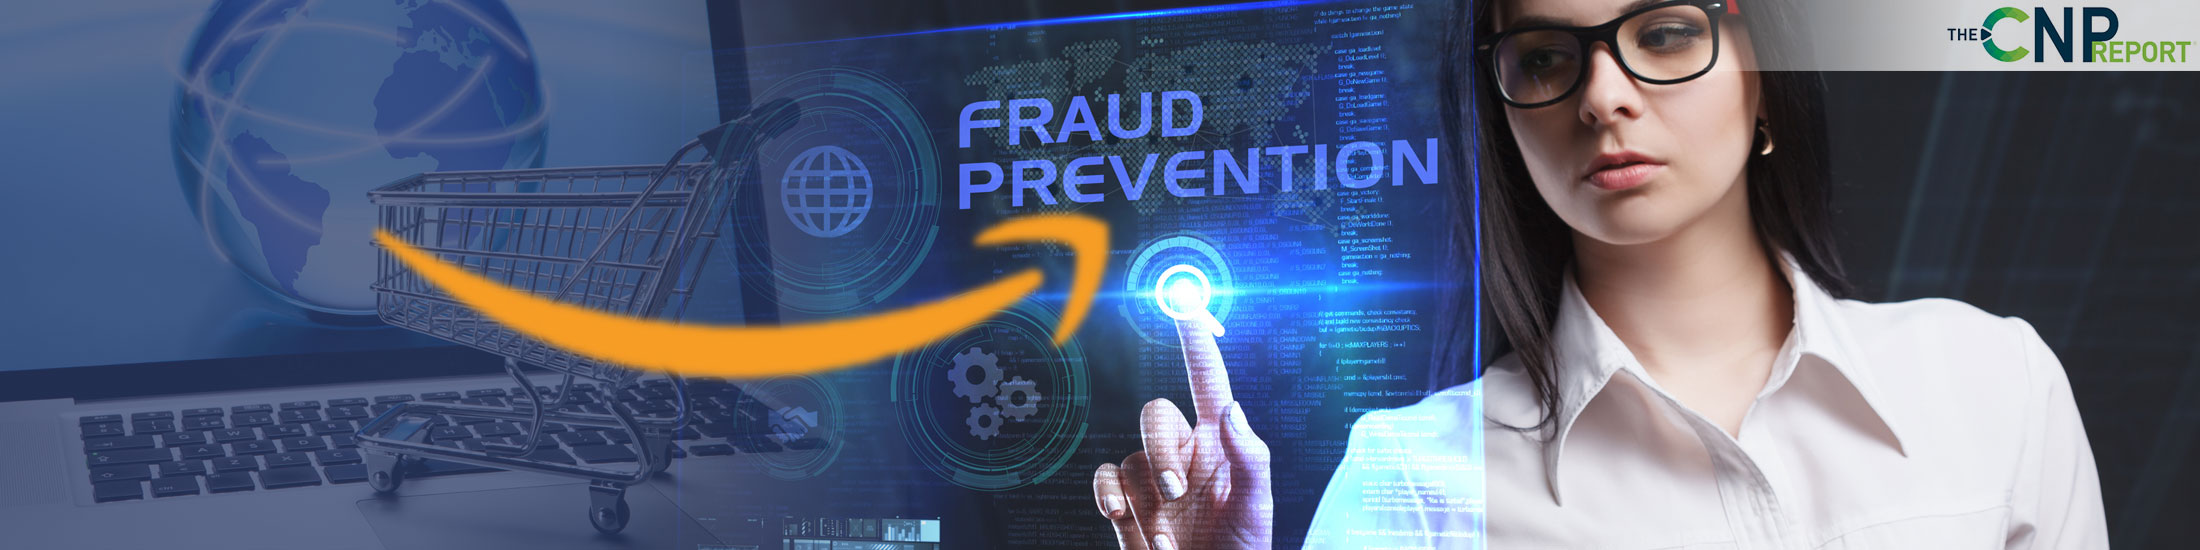 Amazon Enters Fraud Prevention Market